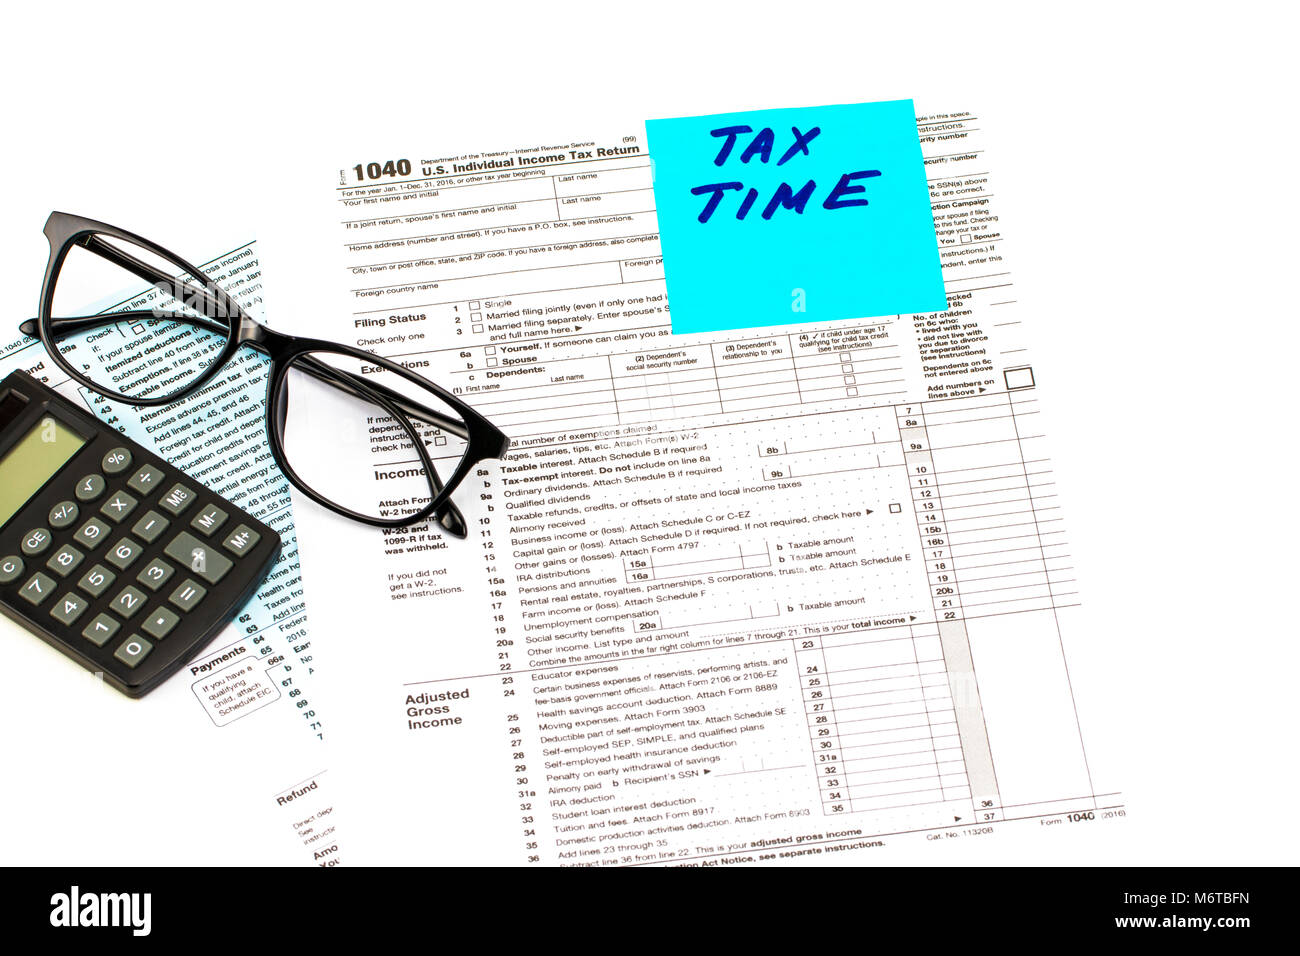 Tax Form And Calculator Stock Photos & Tax Form And